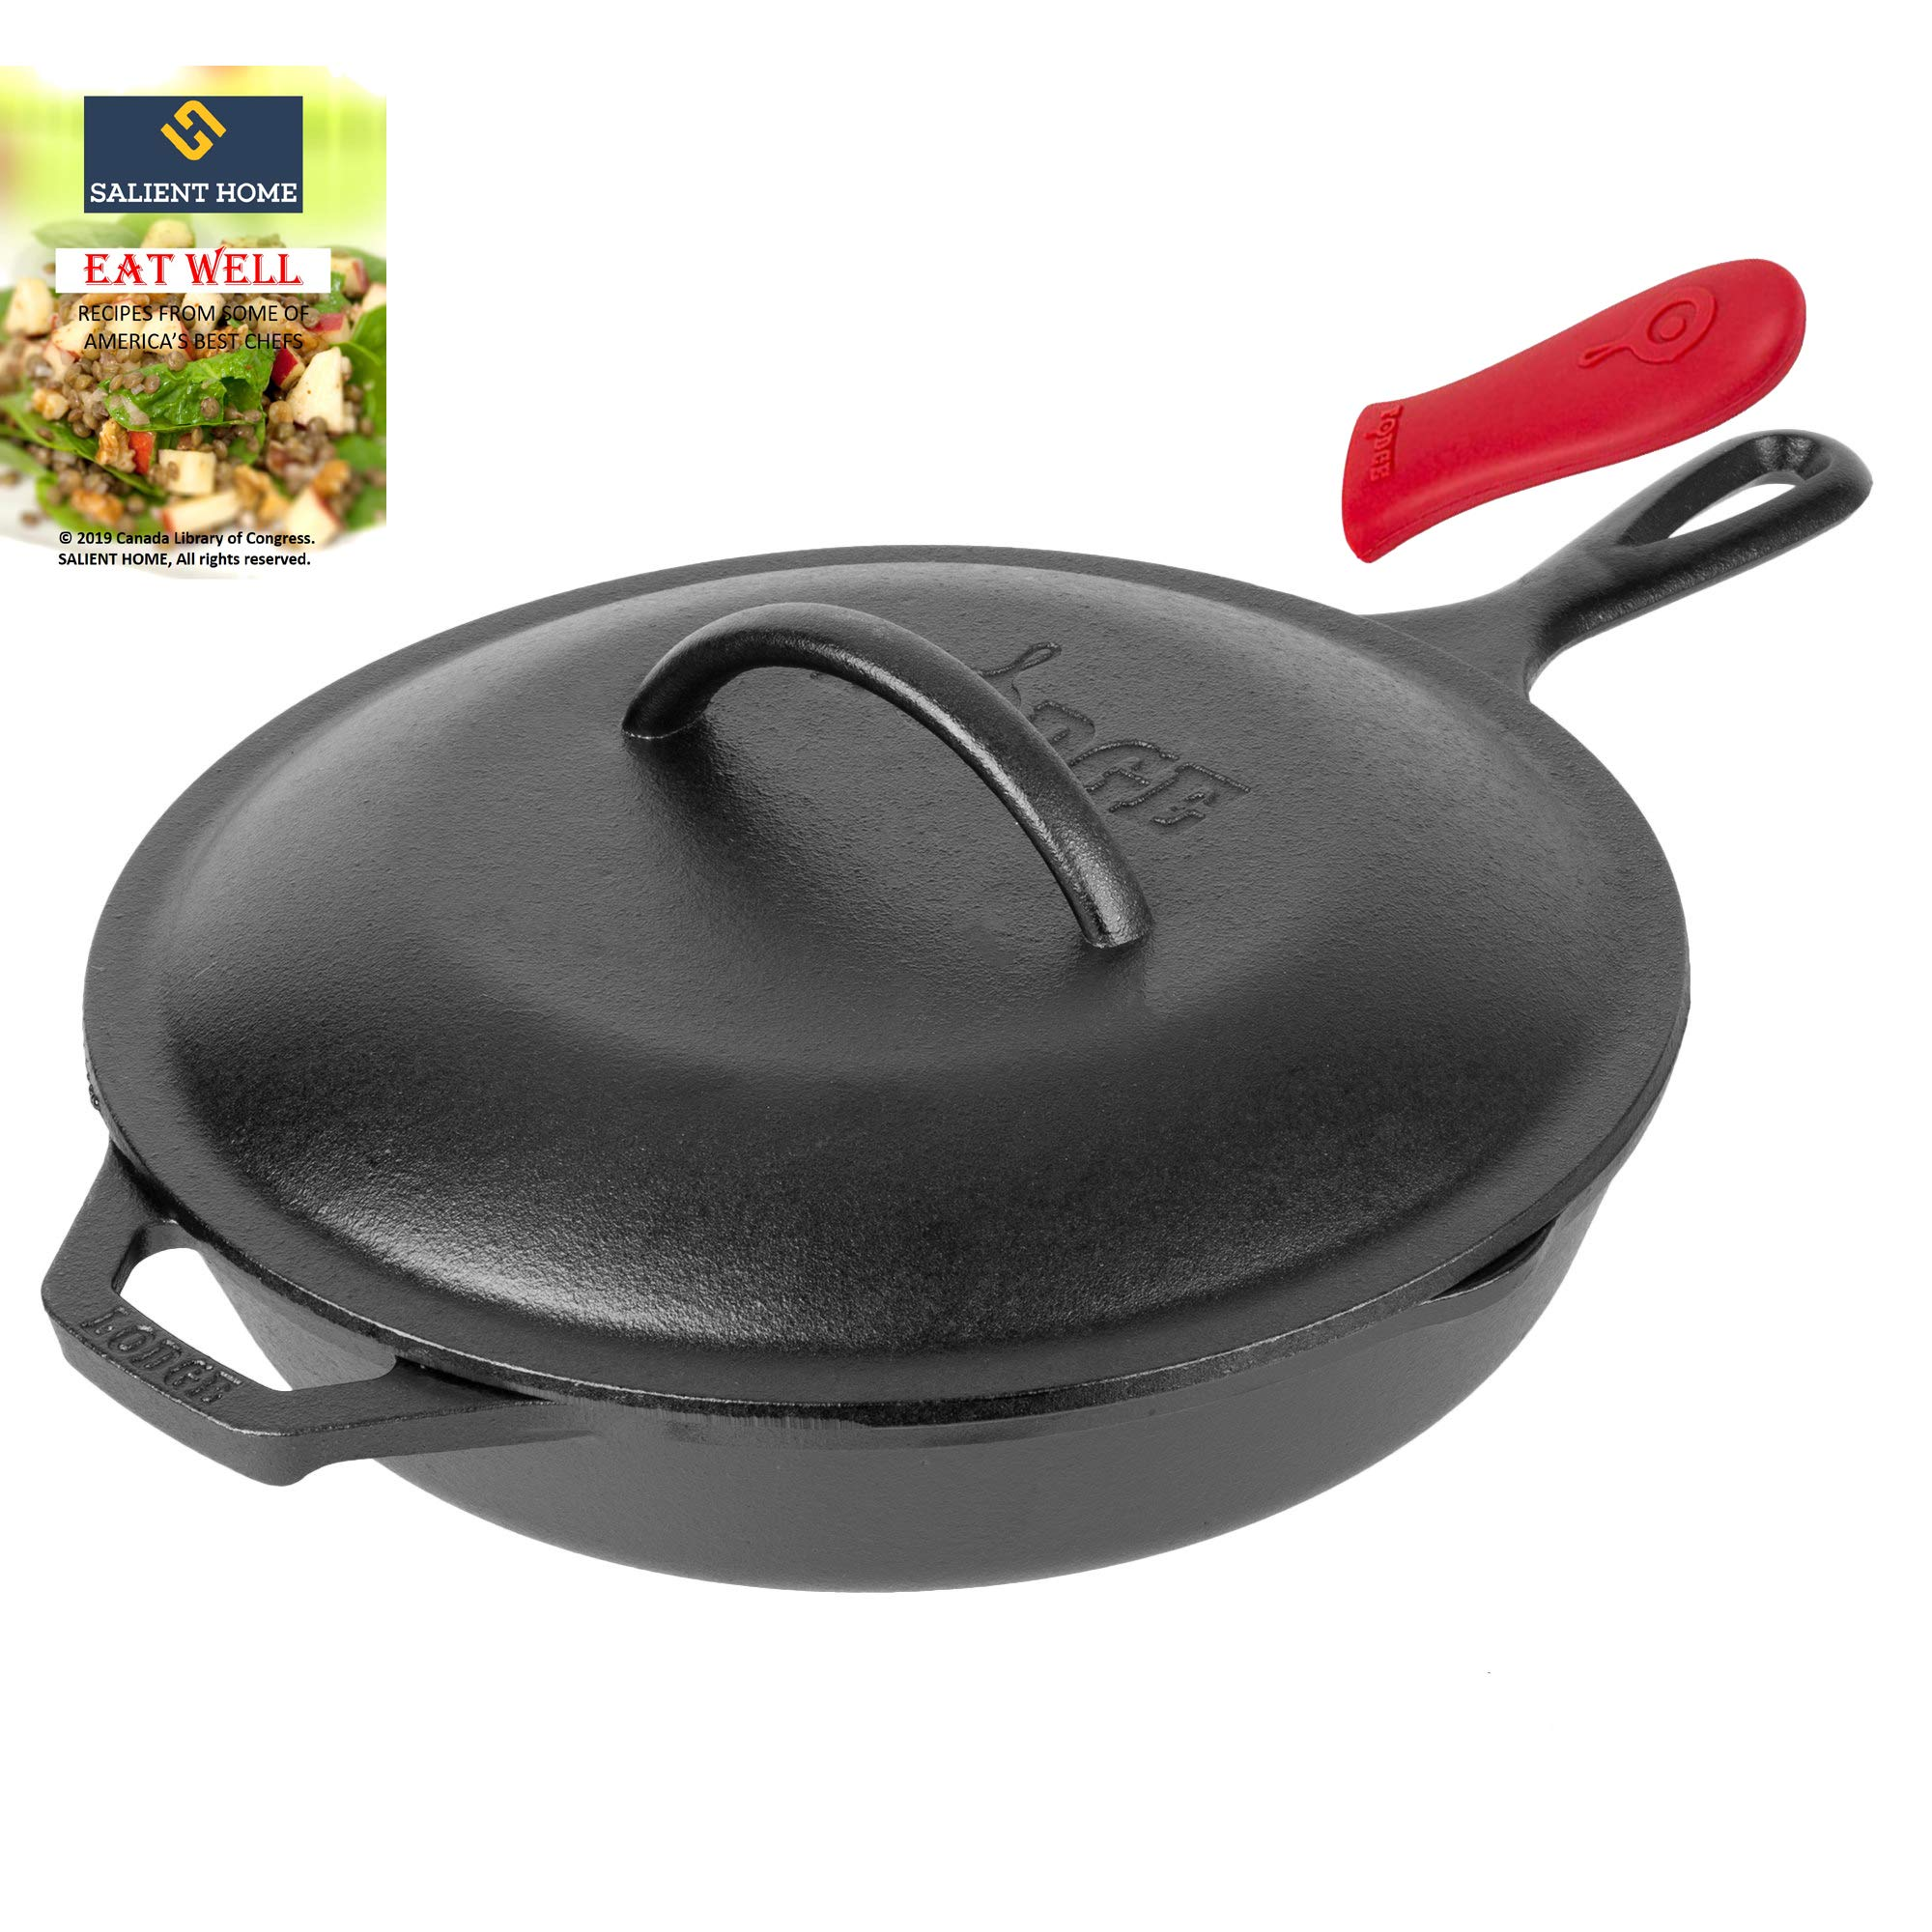 Lodge 10.25'' Cast Iron Black Skillet with LID | Pre-Seasoned Cookware, Frying Pan, Ready for Stovetop, Oven or Camp Cooking | Grill, Induction Safe | SALIENT HOME Cookbook from Top America's Chefs.